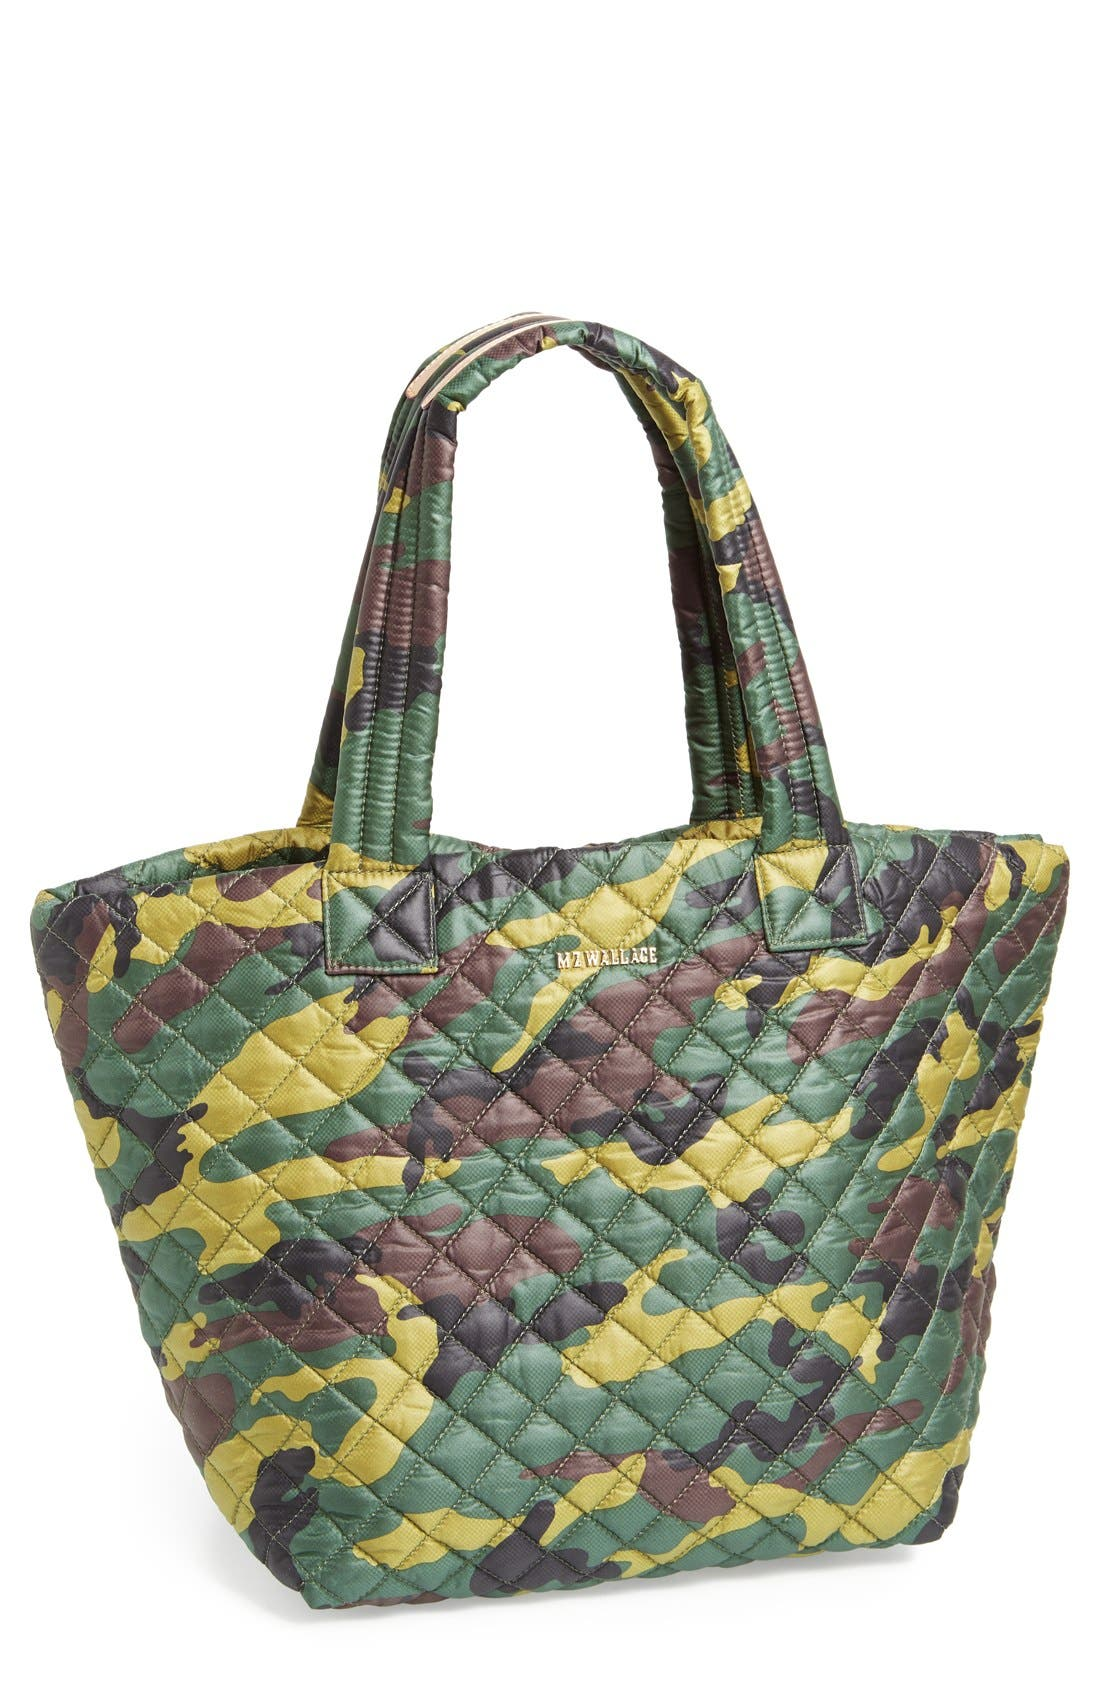 Alternate Image 1 Selected - MZ Wallace 'Medium Metro - Camo' Quilted Oxford Nylon Tote